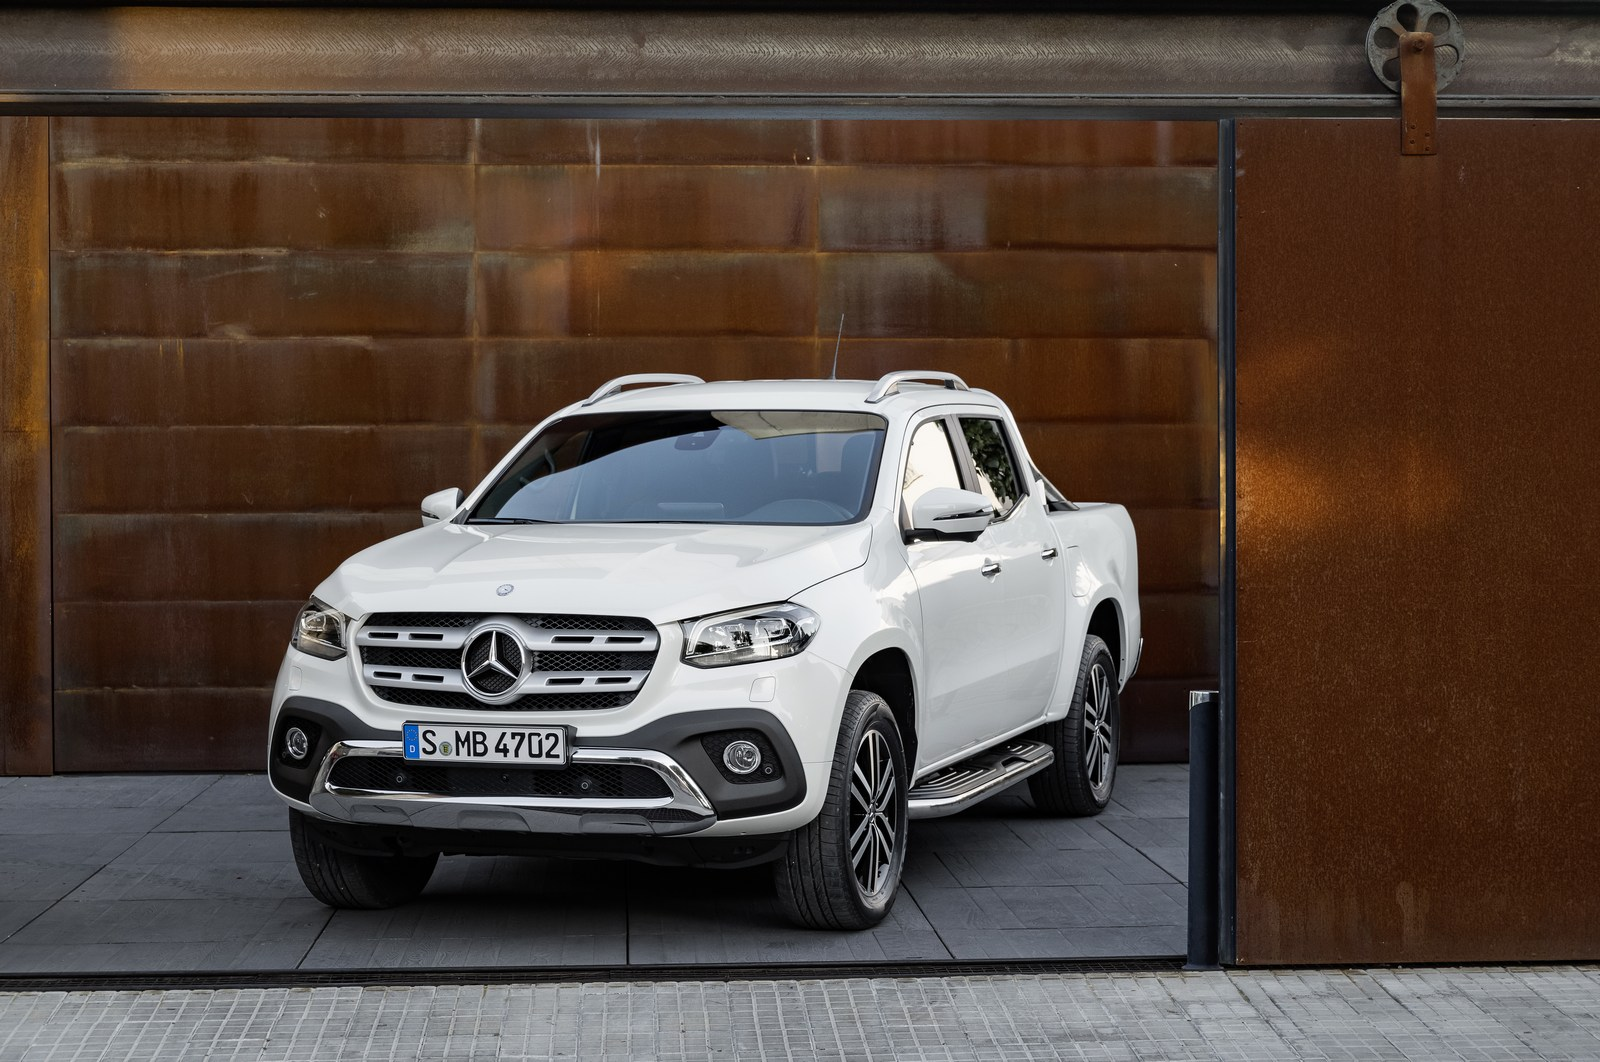 2018 Mercedes X Class   Mercedes Benz AMG   Page 1   Owners